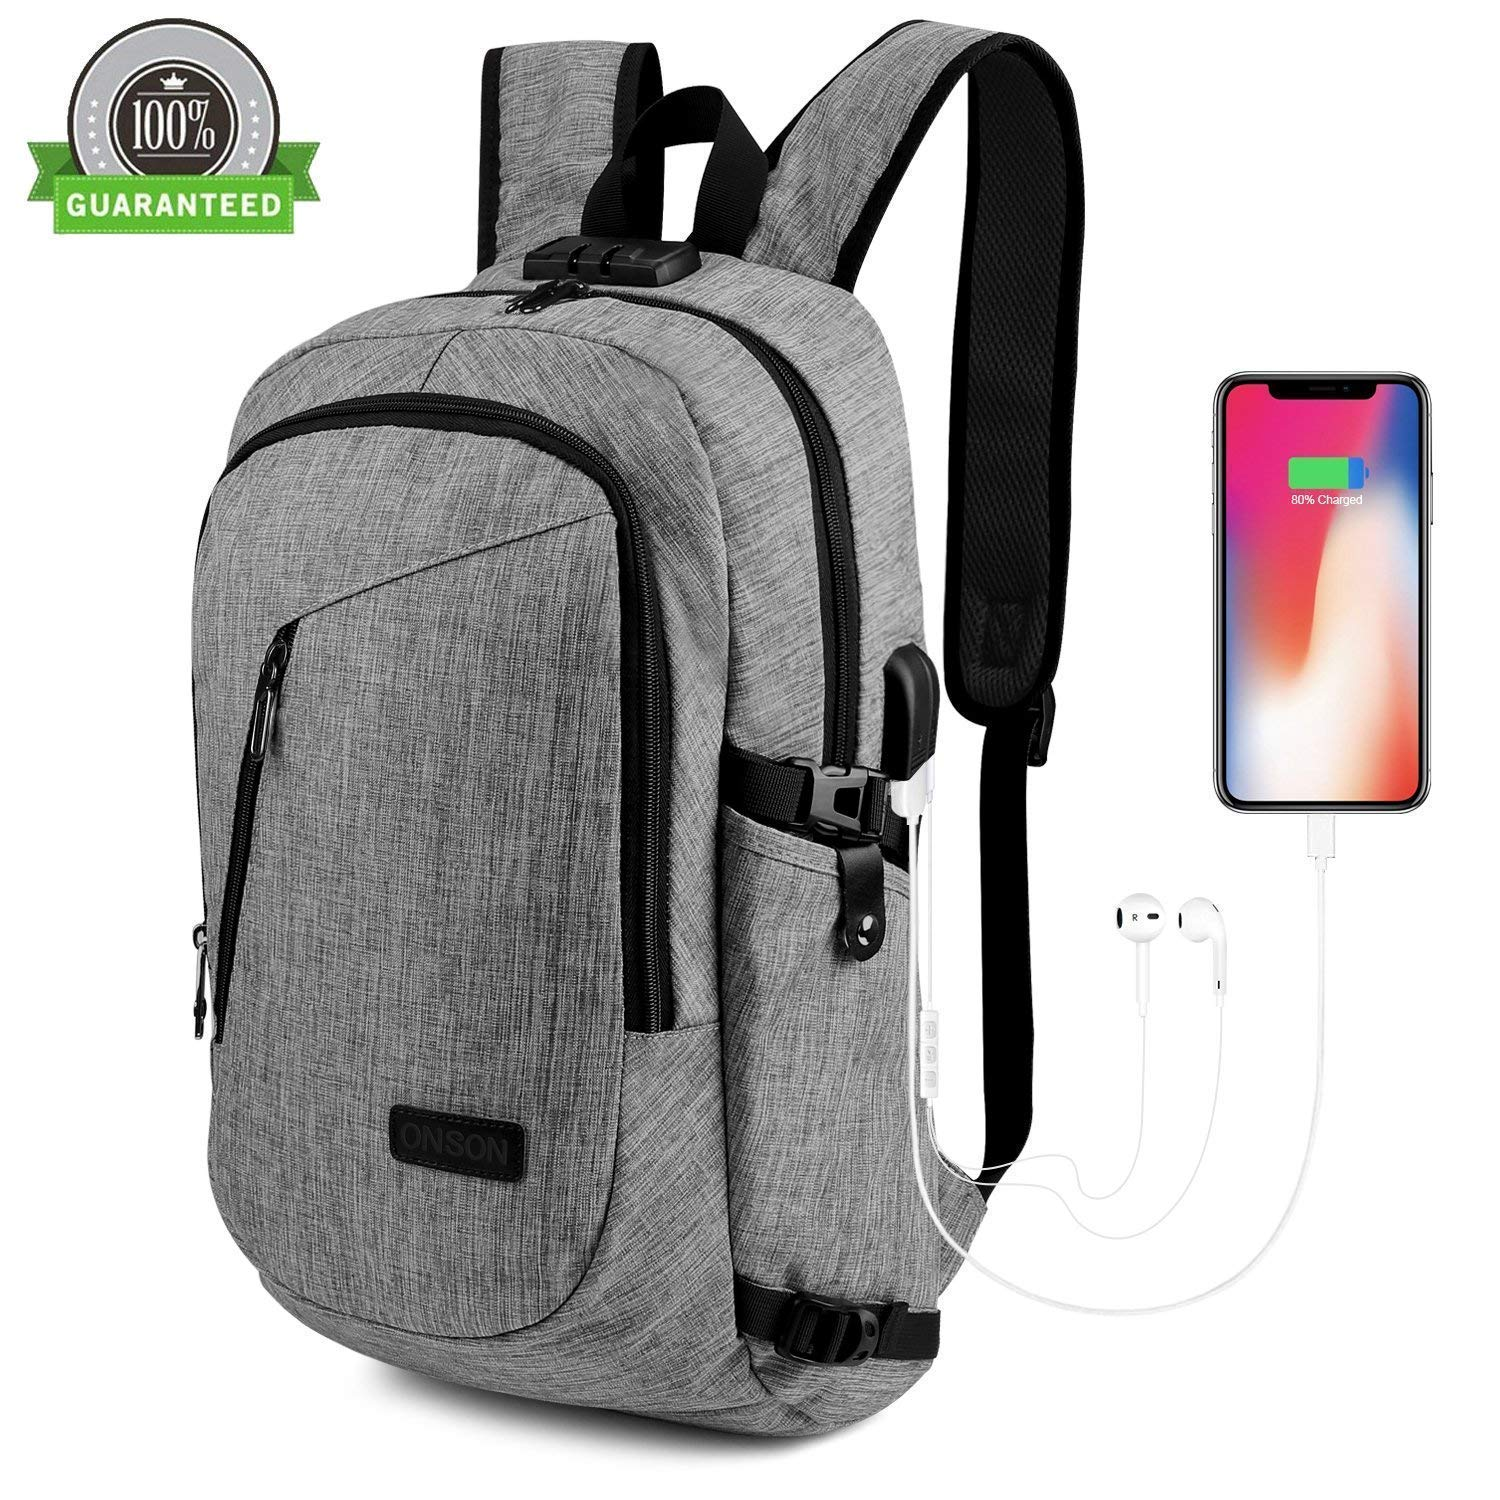 Travel Laptop Backpack, ONSON Laptop Backpack Anti Theft Business Backpack for Men Women, Water Resistant Slim Computer Bag USB Charging Port Fits 15.6 Inch Laptop Notebook - Gray